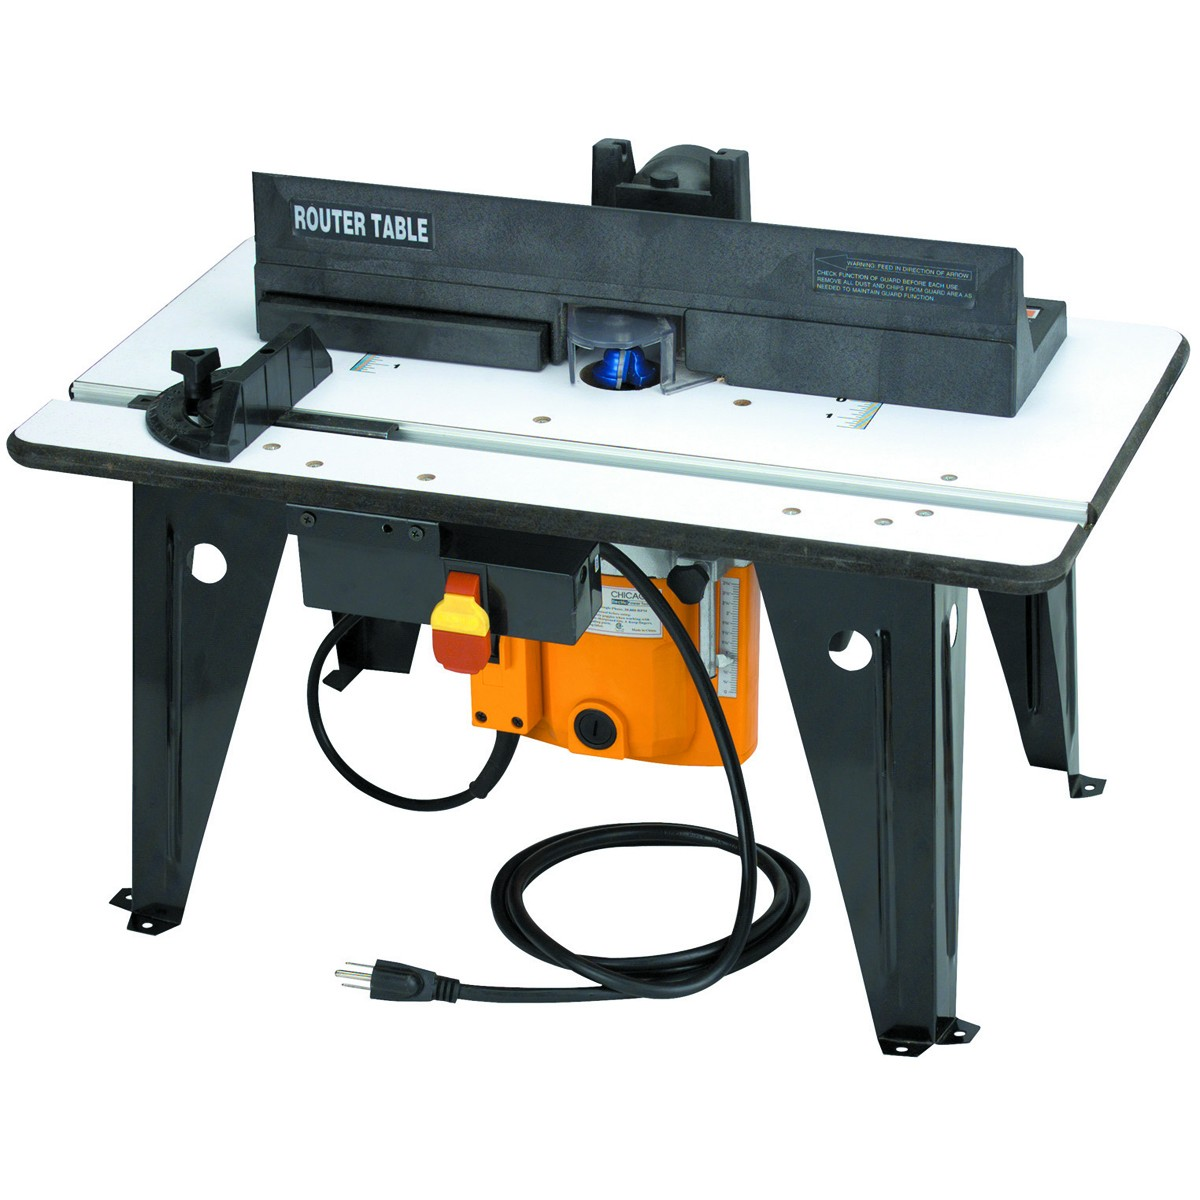 Chicago electric power tools benchtop router table with 1 34 hp chicago electric power tools benchtop router table with 1 34 hp router 20000 rpm 120 v walmart keyboard keysfo Images